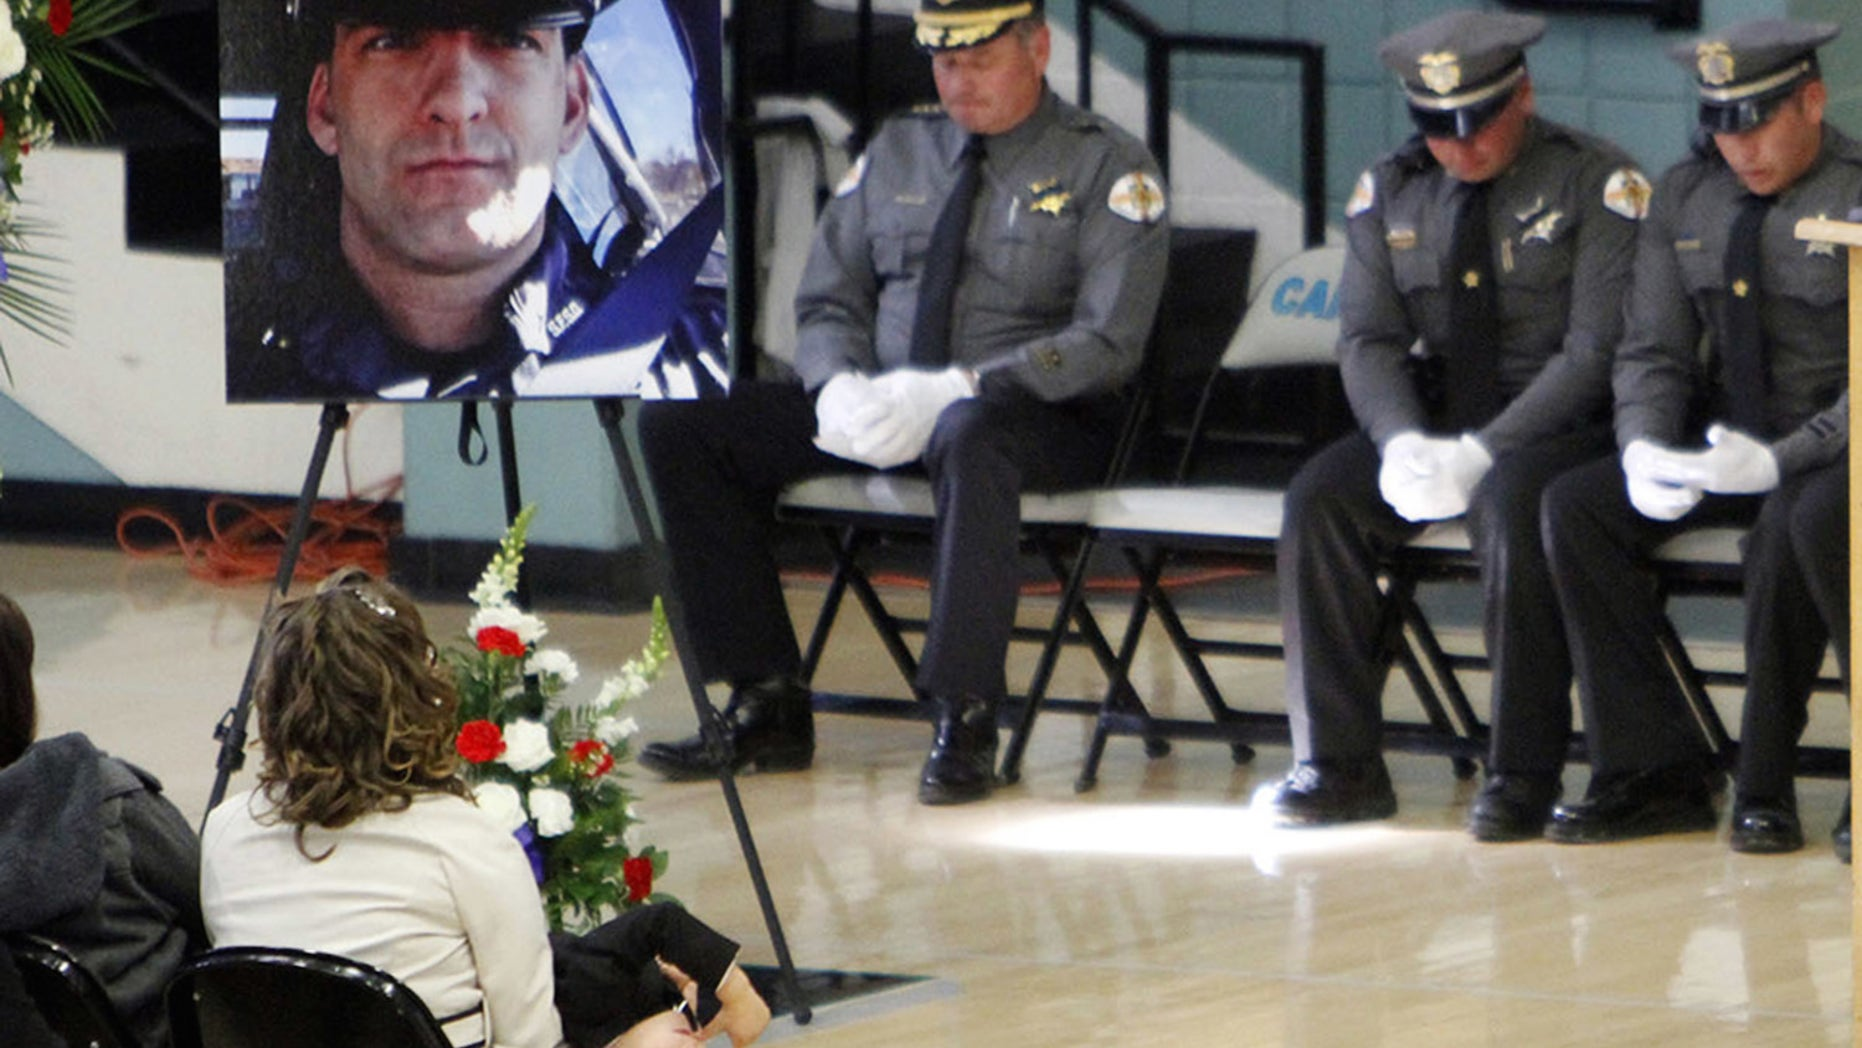 This Nov. 1, 2014 file photo shows a portrait of Santa Fe County Sheriff's Deputy Jeremy Martin during his memorial service.